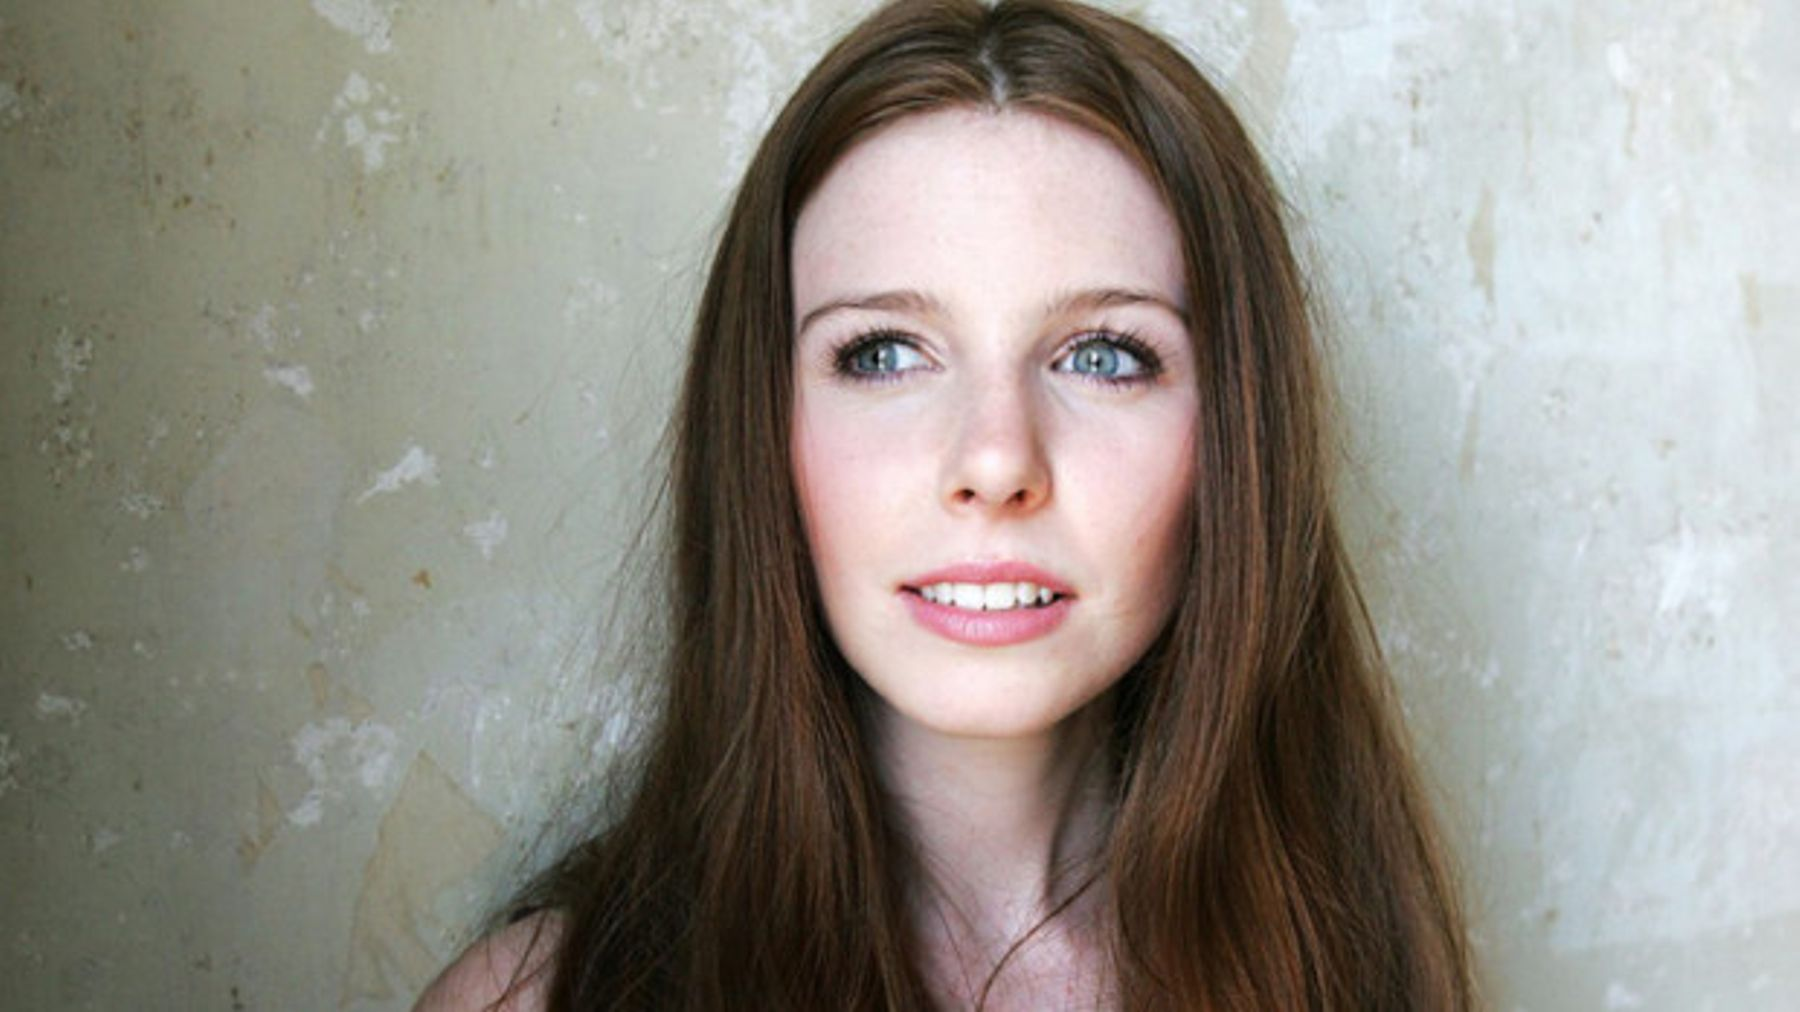 Belly Button Sex And Escaped ISIS Sex Slaves: Stacey Dooley ...